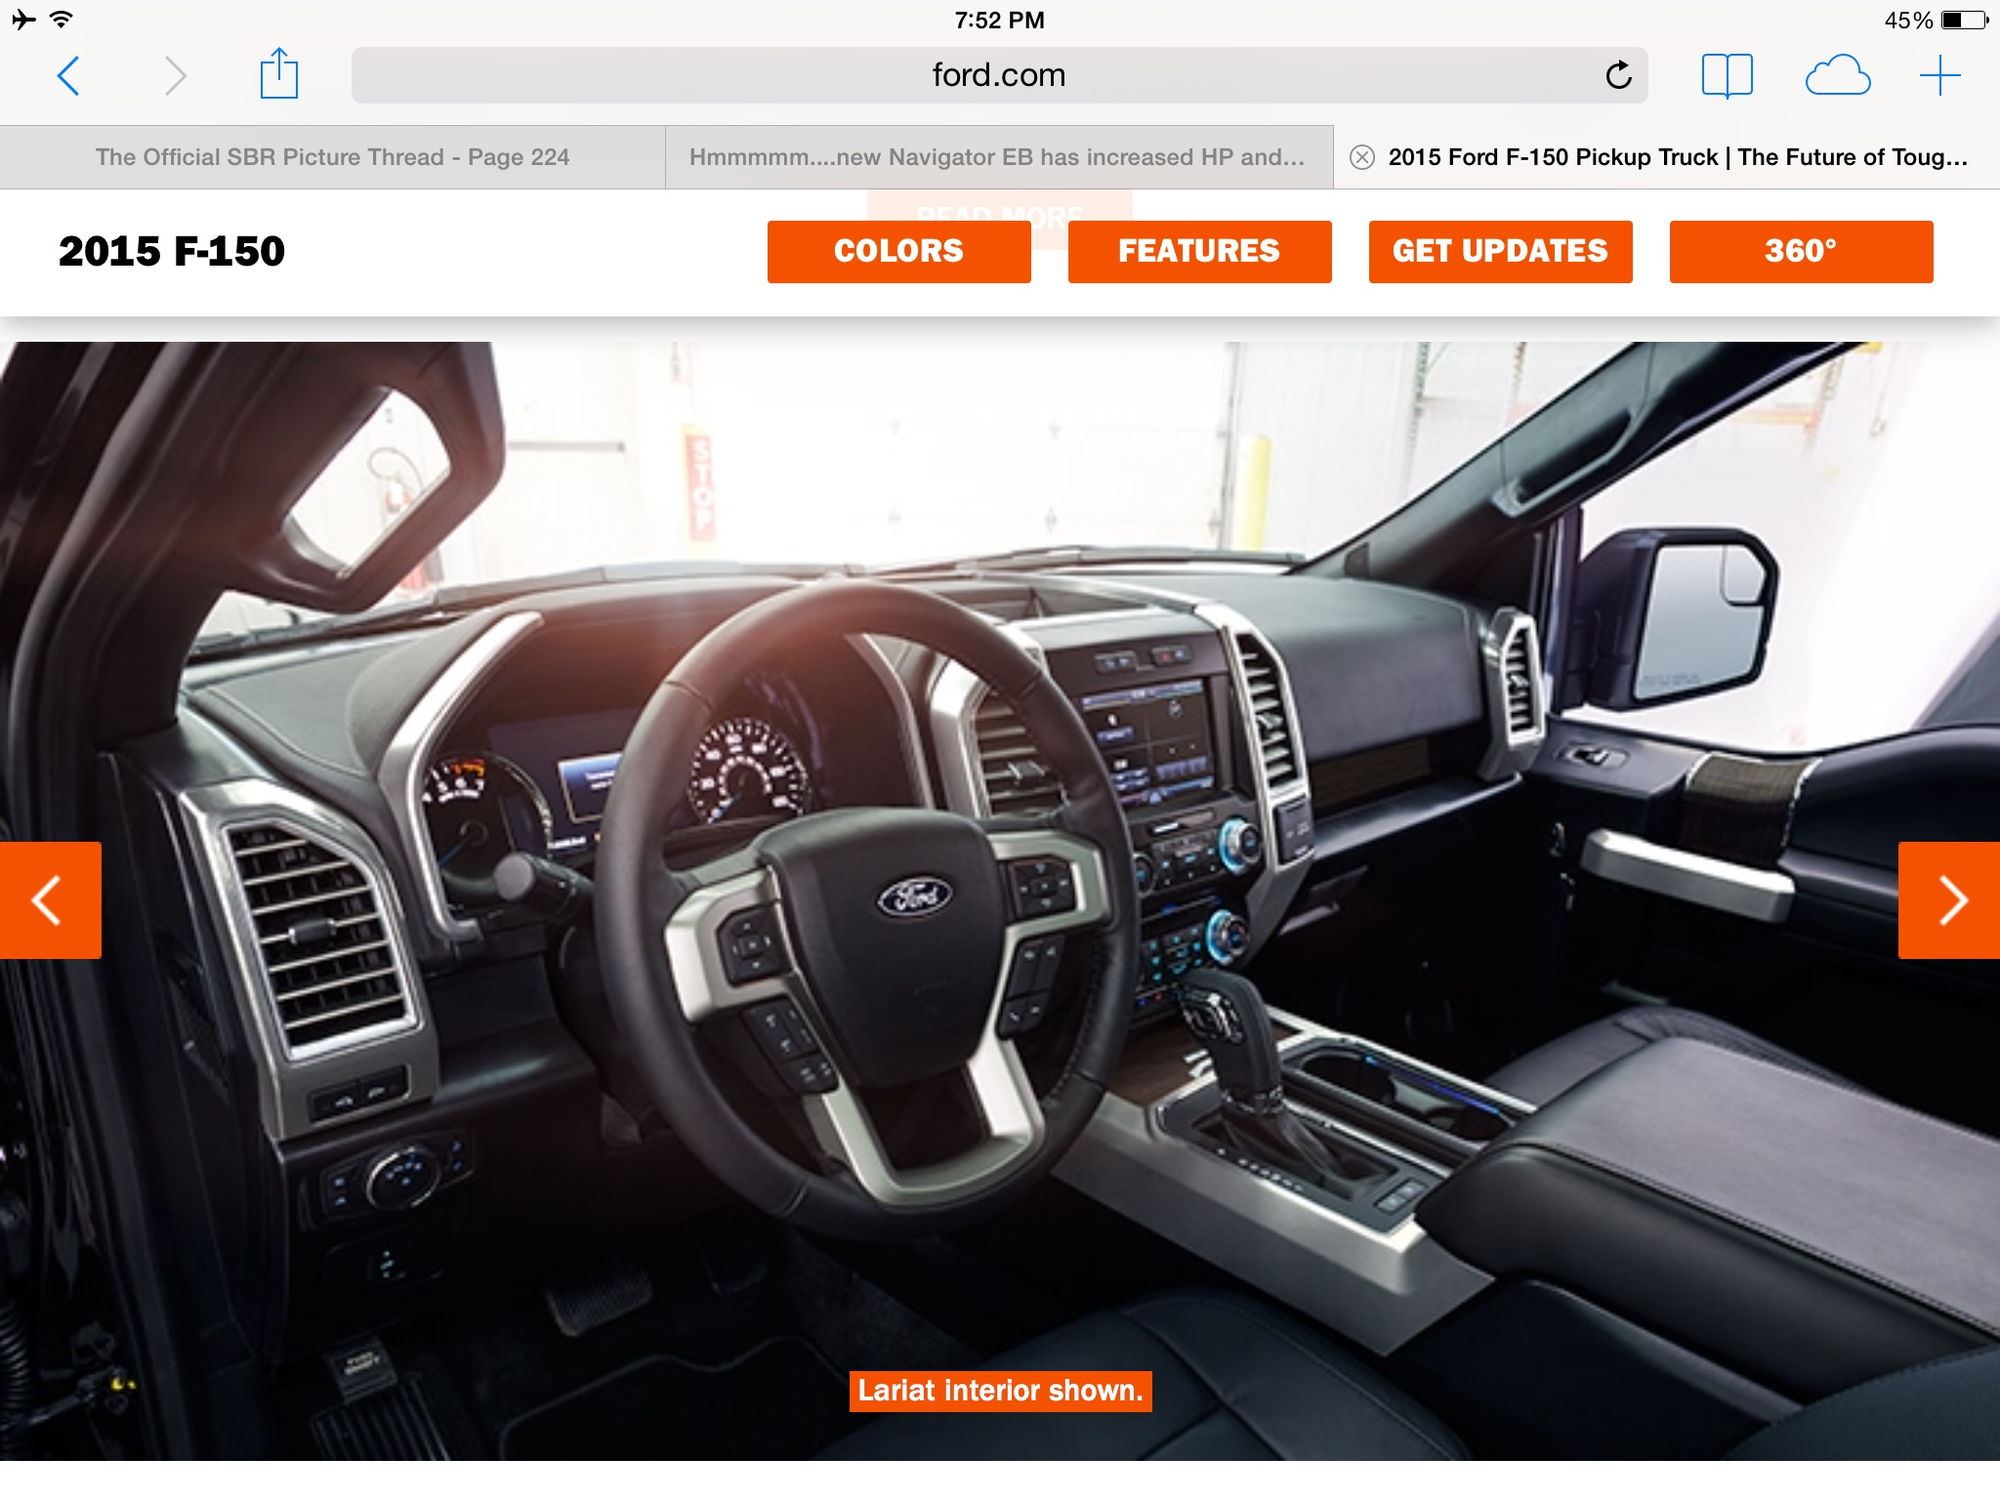 ... Laramie Leather, Where The King Ranch Match Up With The Laramie Longhorn  And The Platinum Is In Line With The Laramie Limited Leather. Lariat  Interior